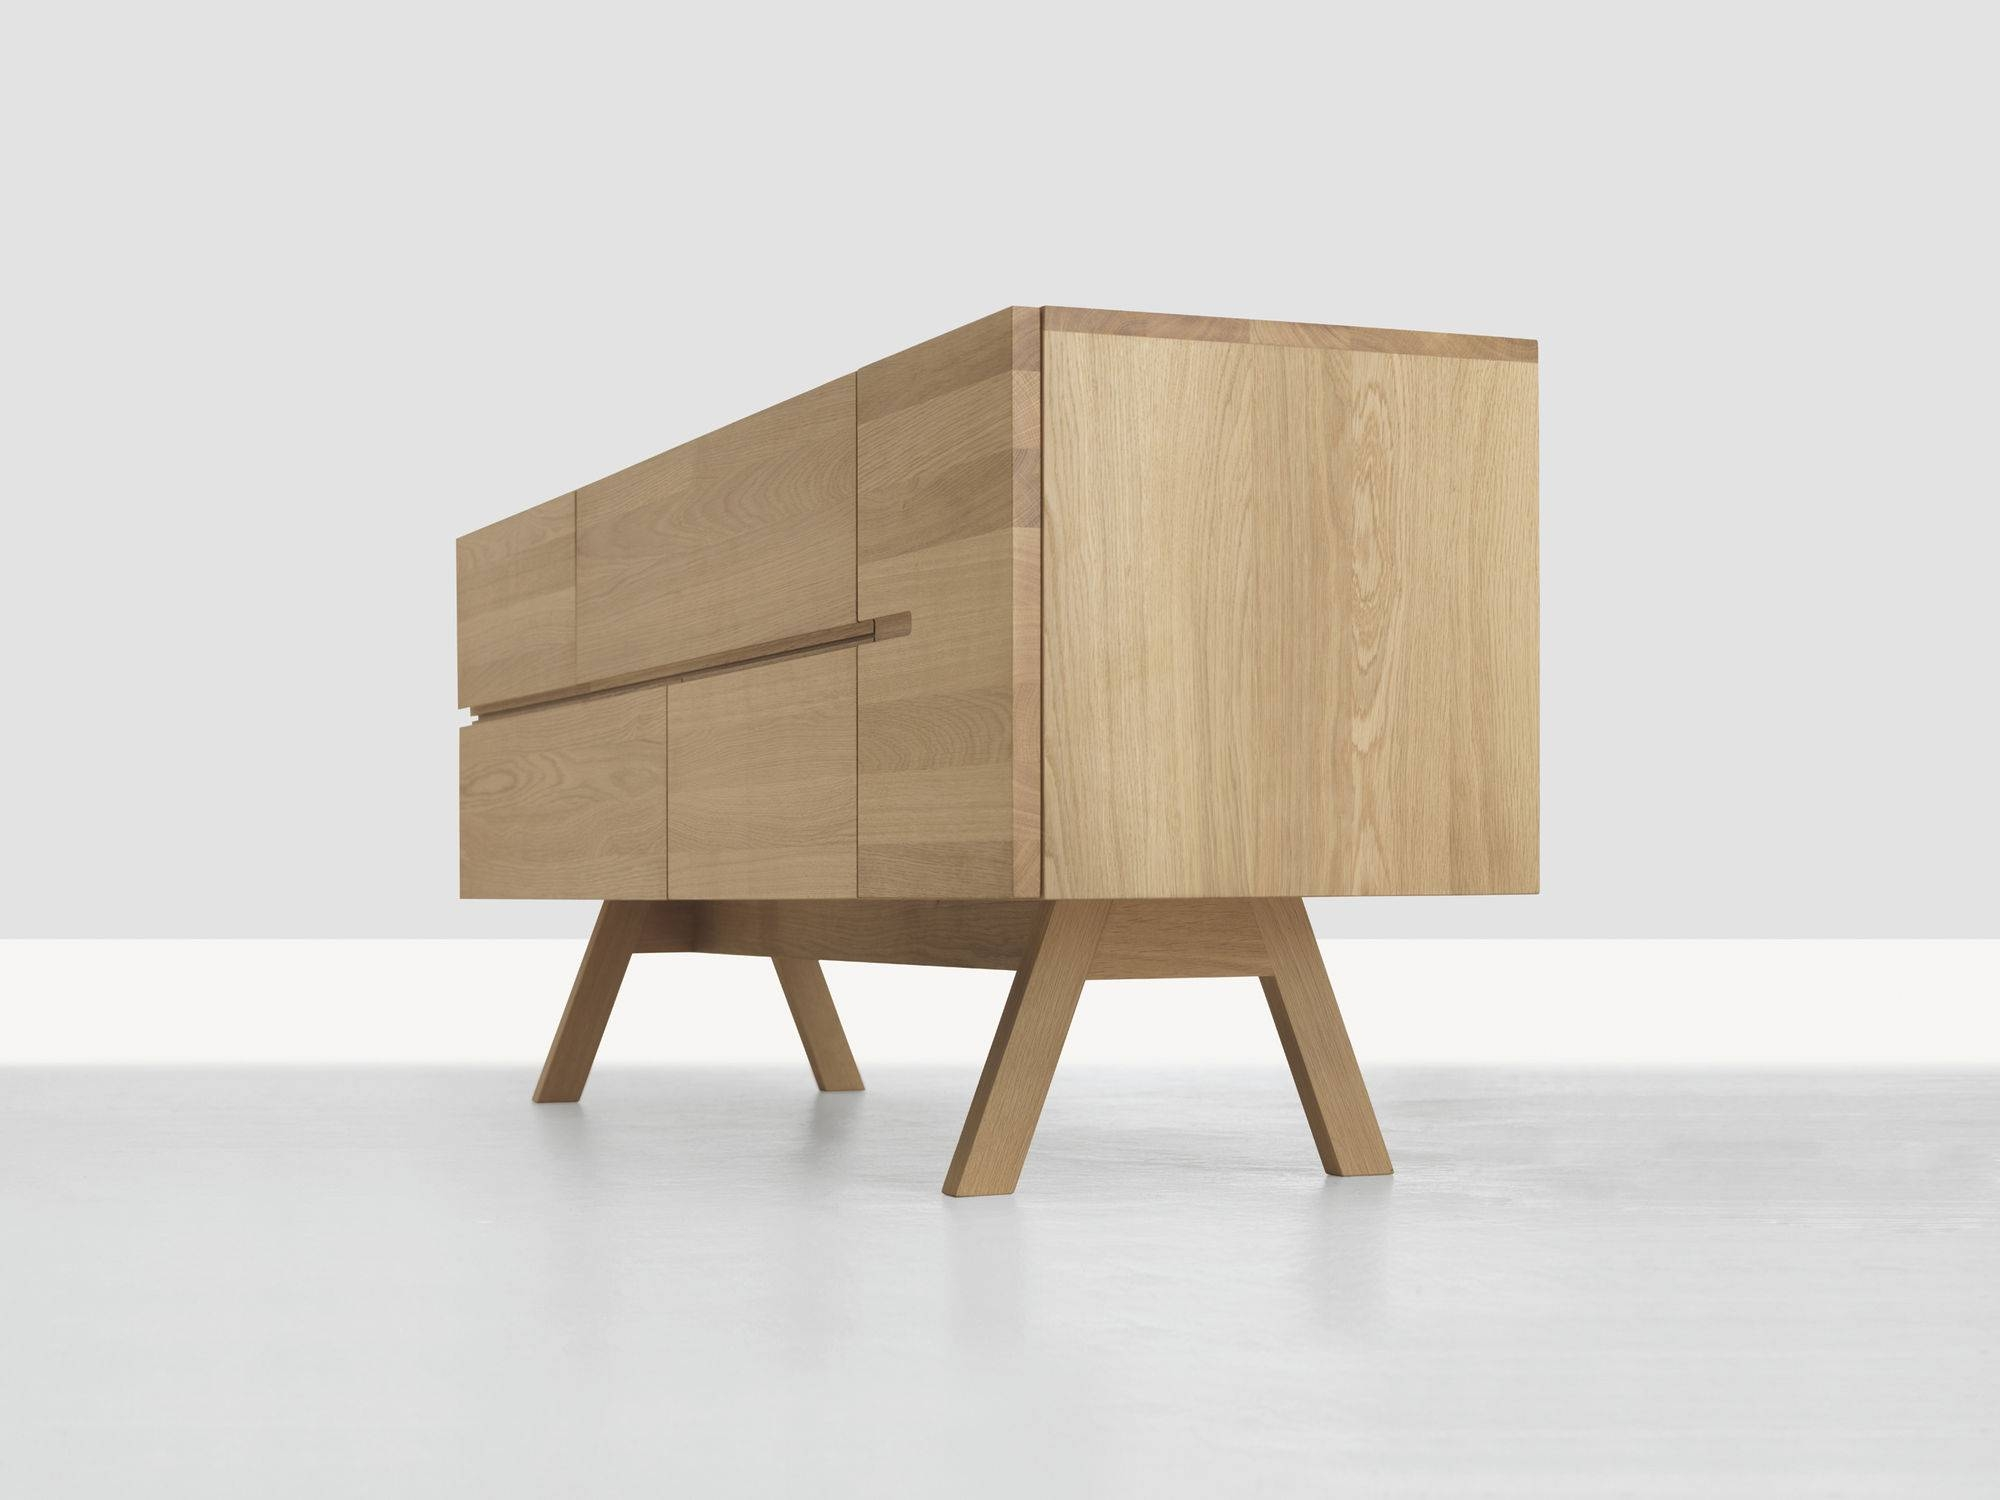 Contemporary Sideboard / Solid Wood - Low Atelierformstelle with regard to Solid Wood Sideboards (Image 5 of 15)